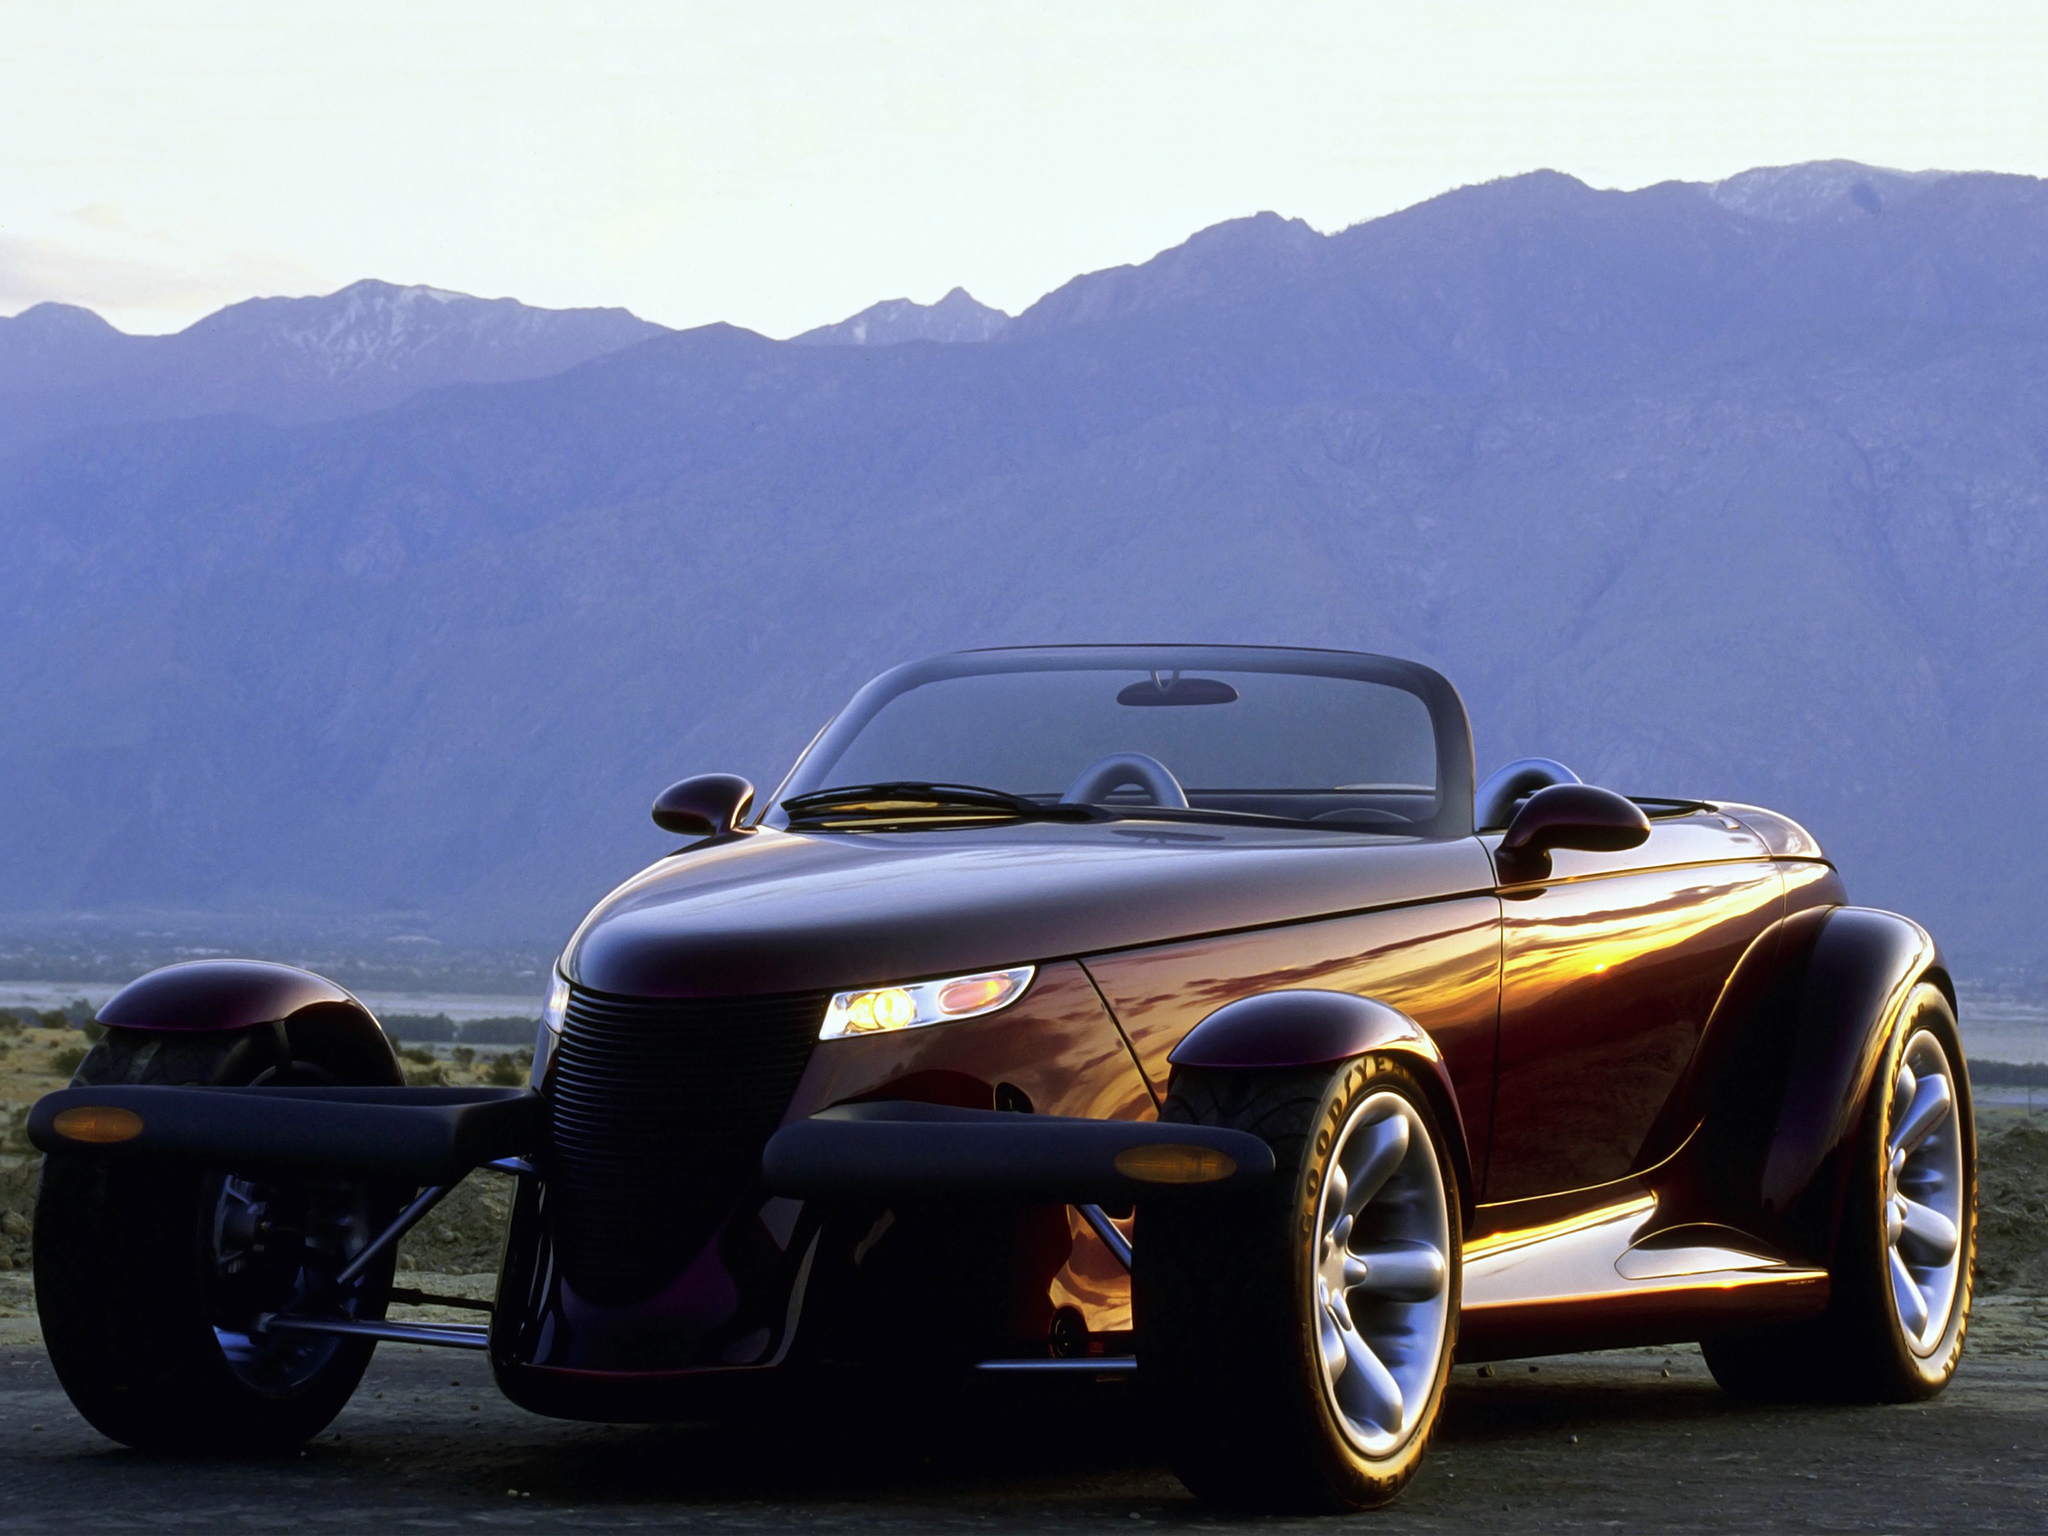 2000 PLYMOUTH PROWLER CUSTOM CONVERTIBLE 132804 together with 21 Inch Front Wheel For 2008 Harley Davidson Street Glide in addition 38351034301585490 likewise Sp off grid solar power rv motor home p3 besides 1960 Pontiac Catalina. on 2002 plymouth prowler